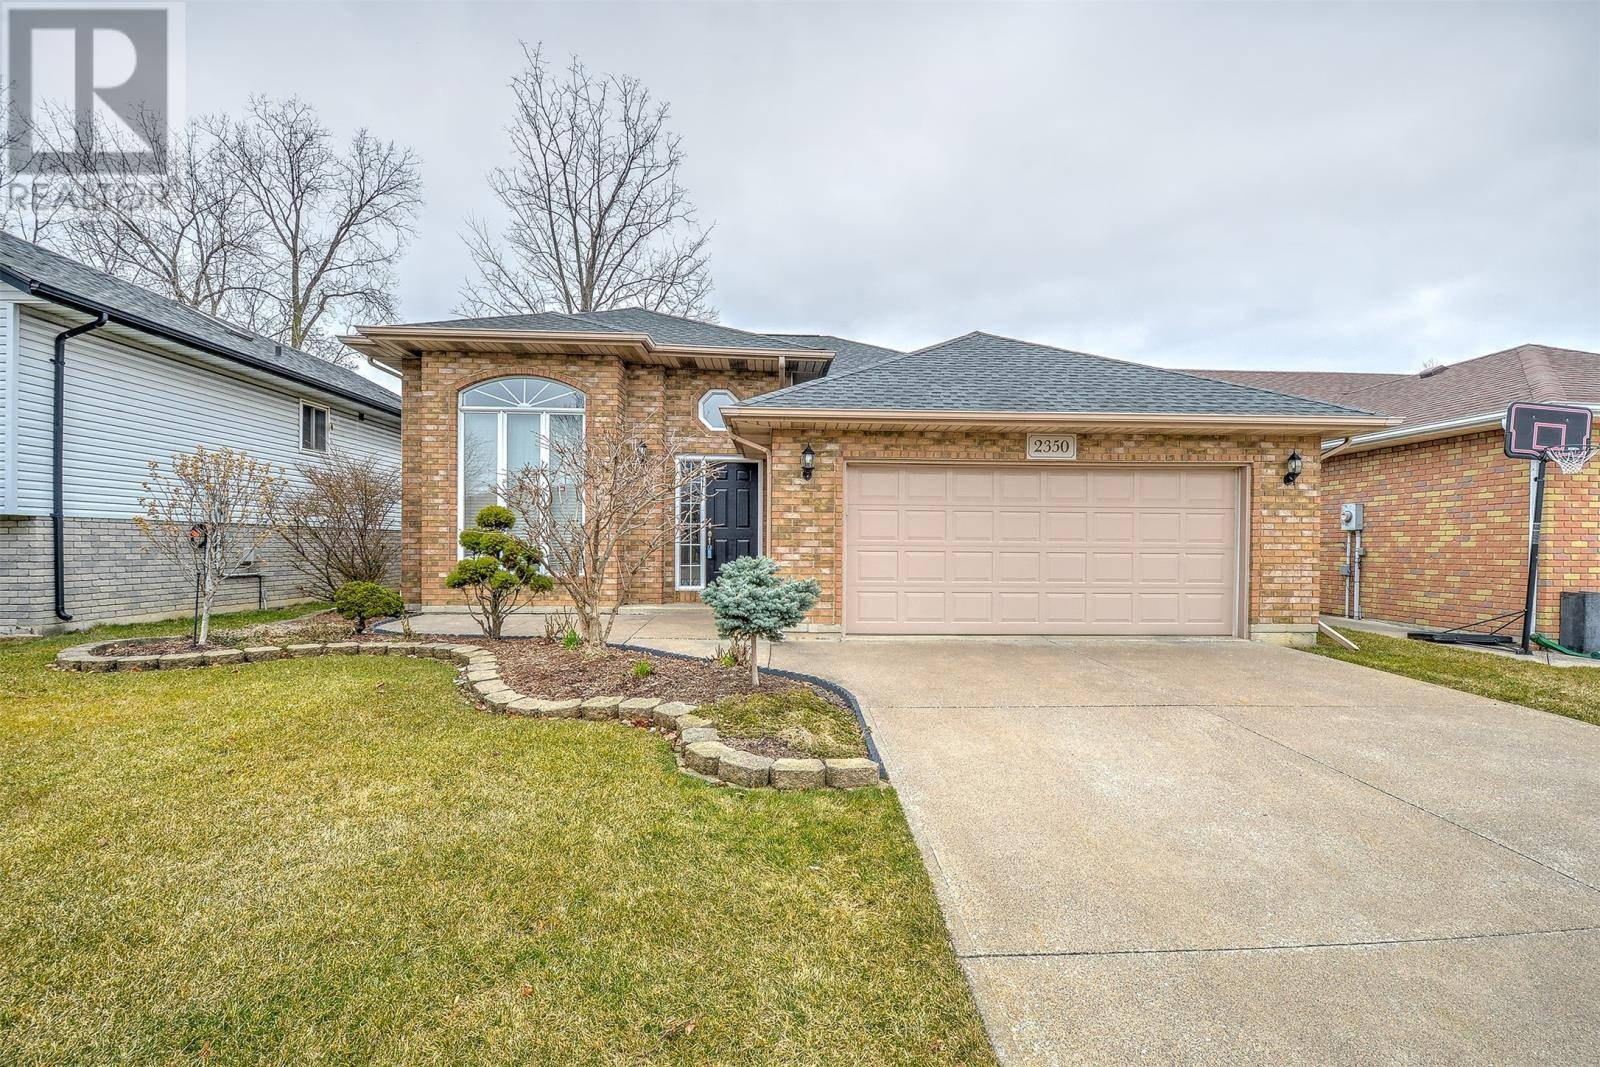 House for sale at 2350 California Ave Windsor Ontario - MLS: 20003440